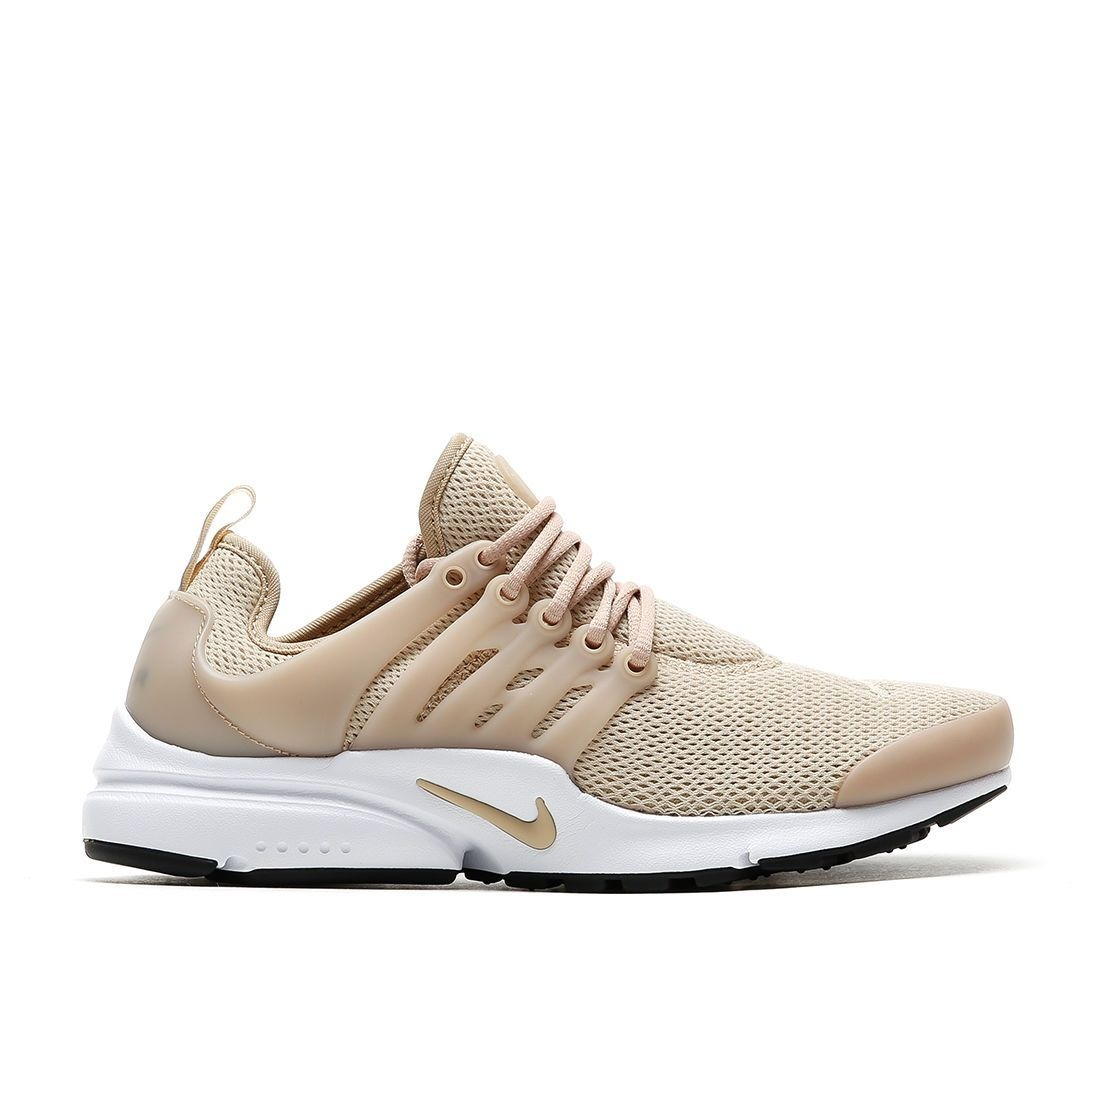 new product f7d7d 5760b zapatillas nike air presto doradas dama originales en caja